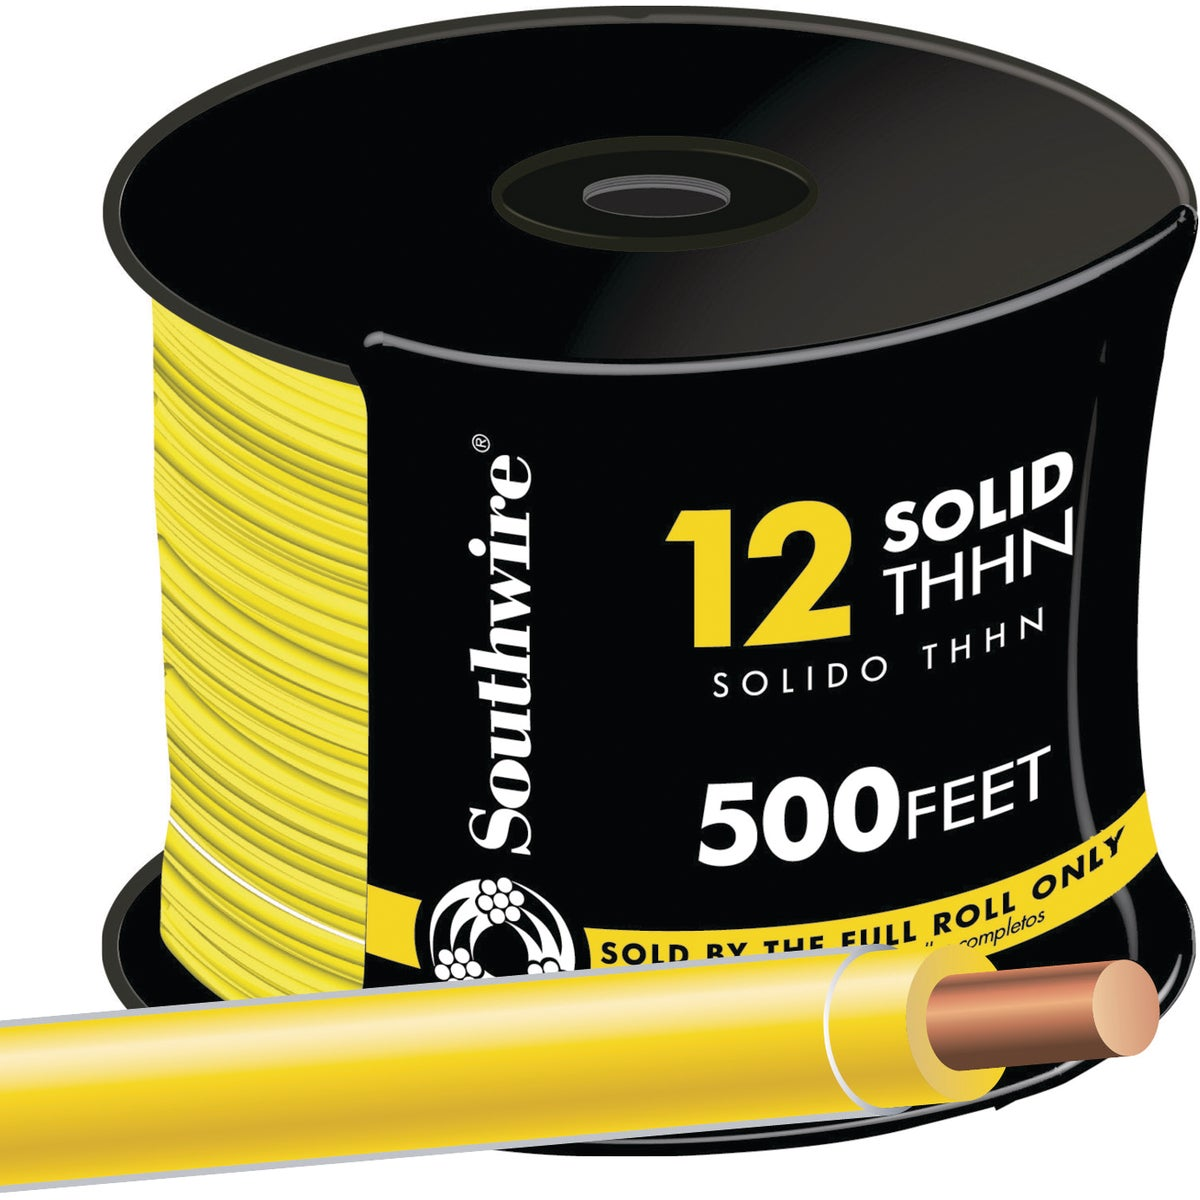 500' 12SOL YEL THHN WIRE - 11592358 by Southwire Company